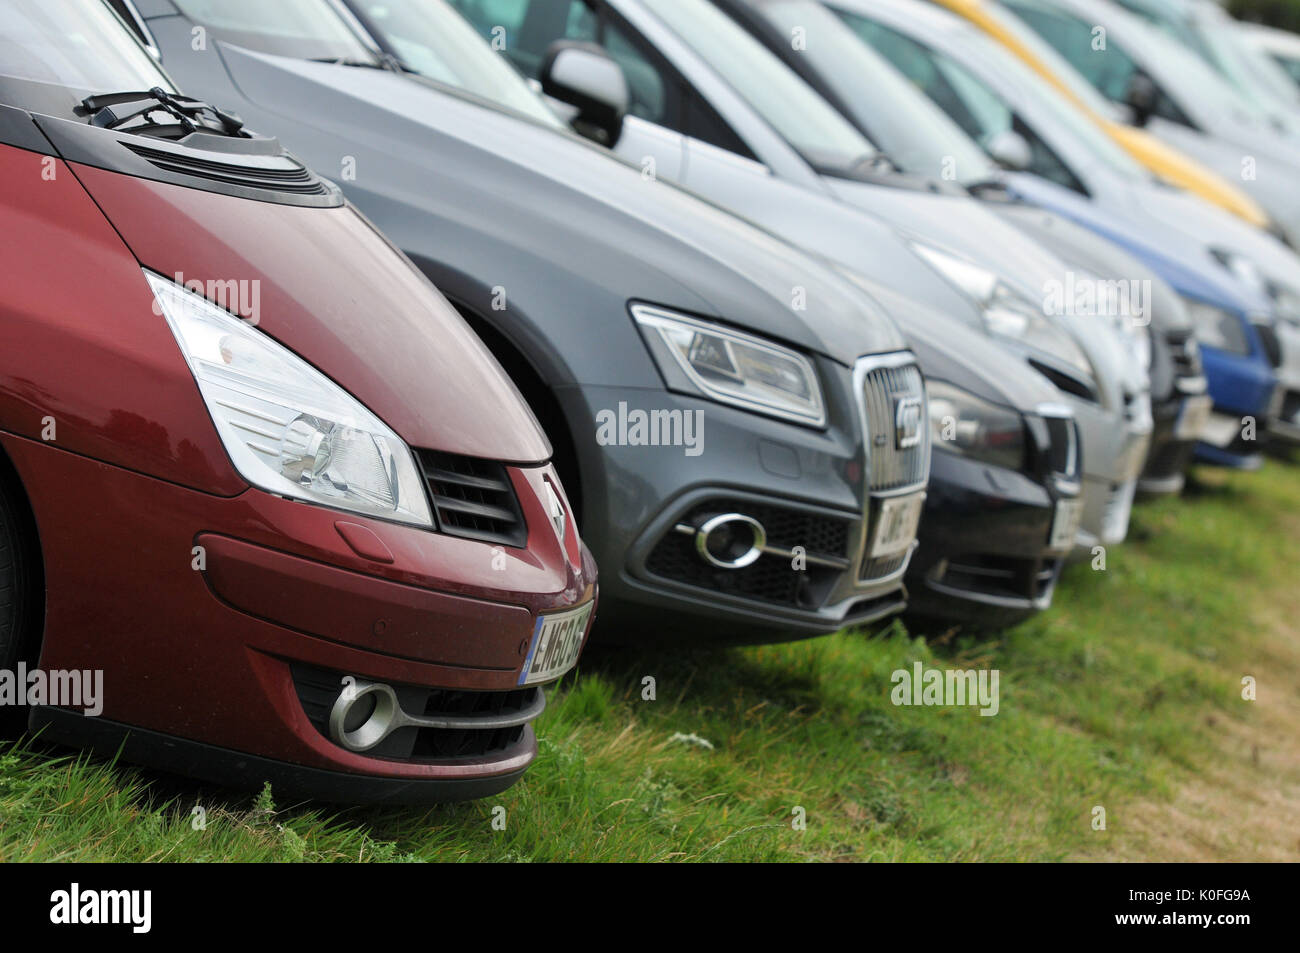 a row or line of modern cars parked in a row in a field or carpark different colours headlights and bumpers on the - Stock Photo